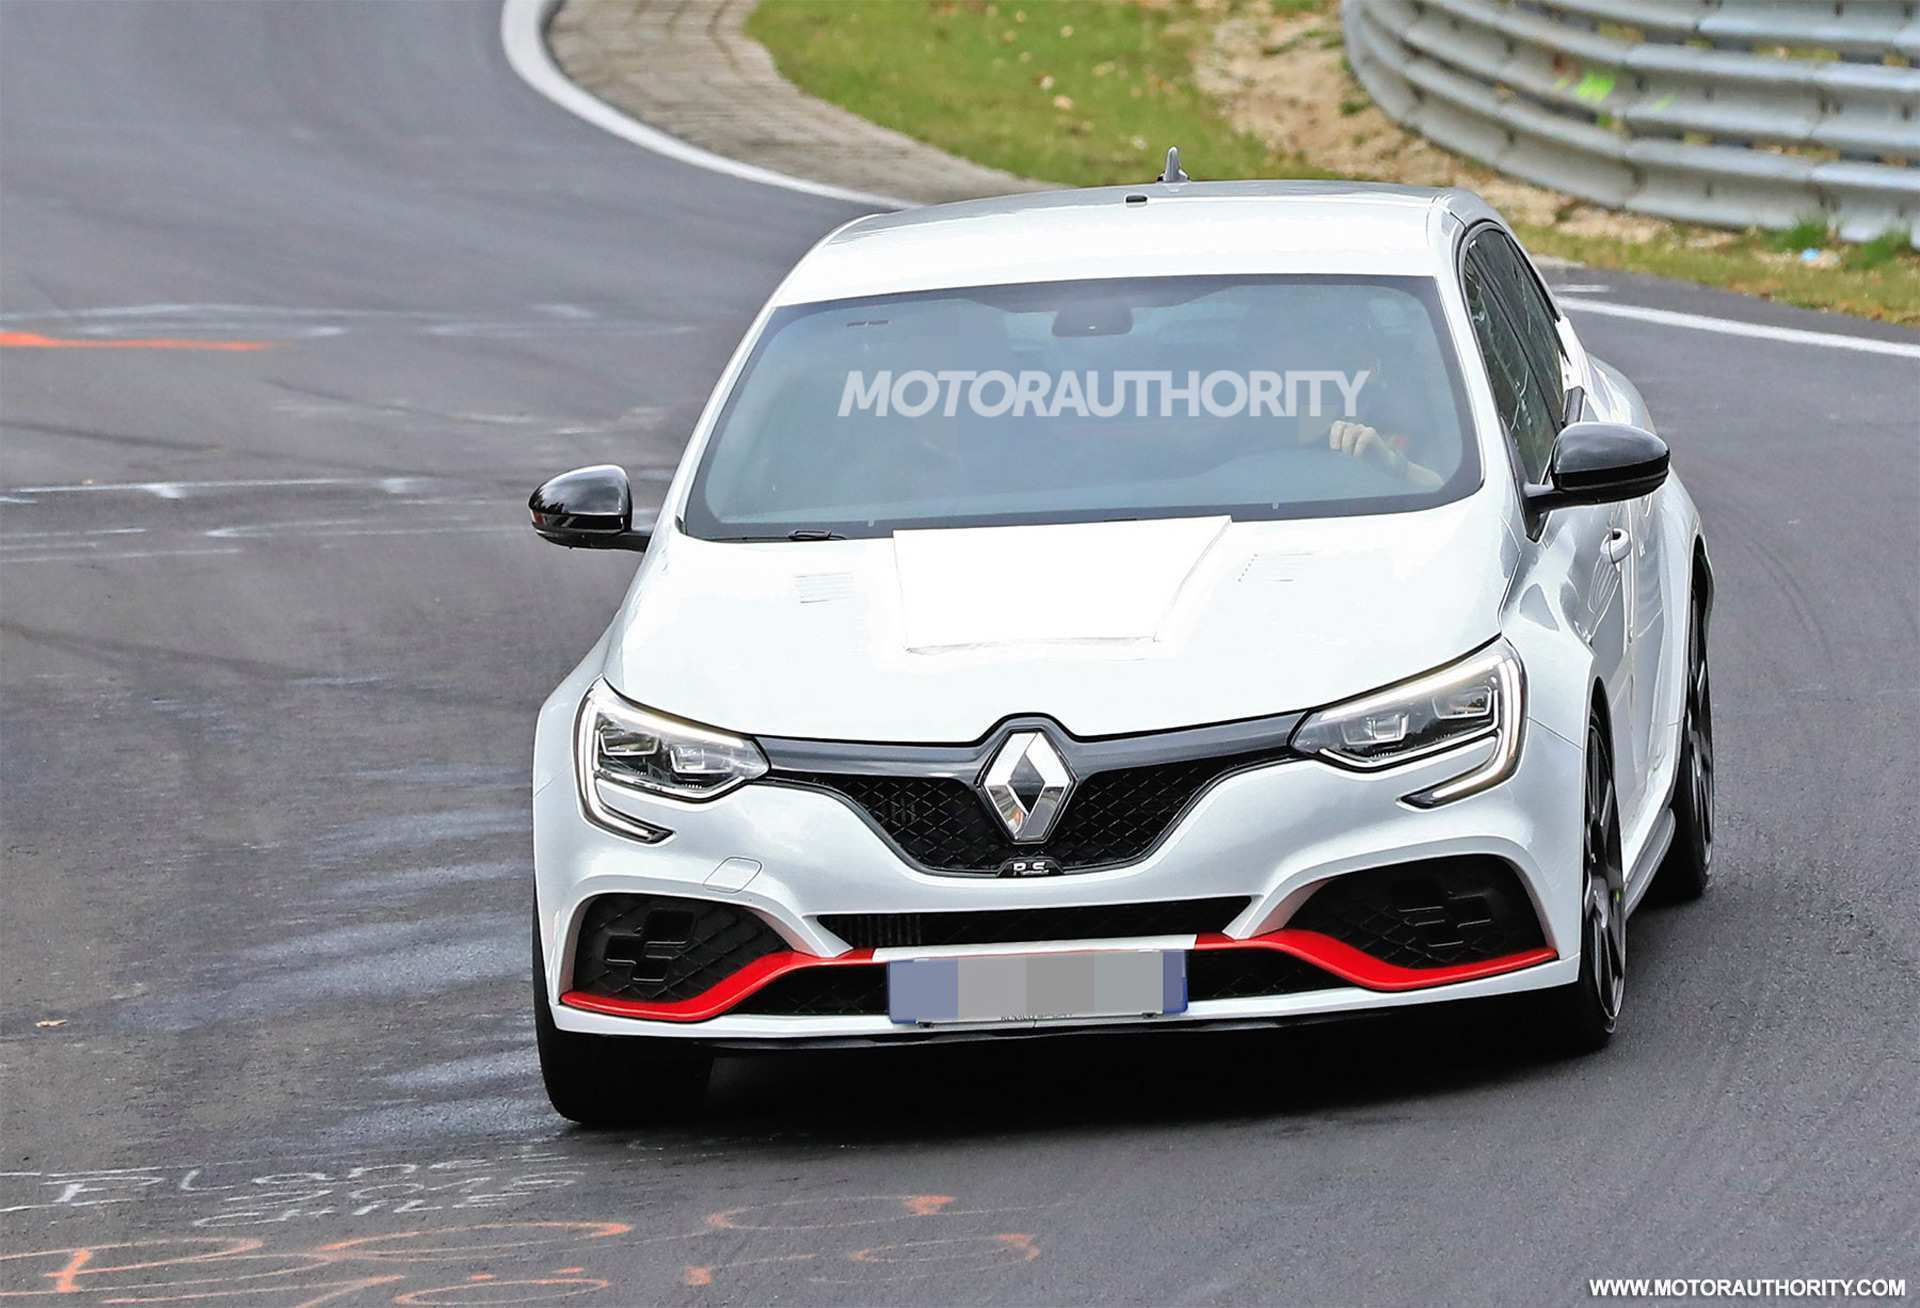 80 The Best 2020 Renault Megane SUV Research New